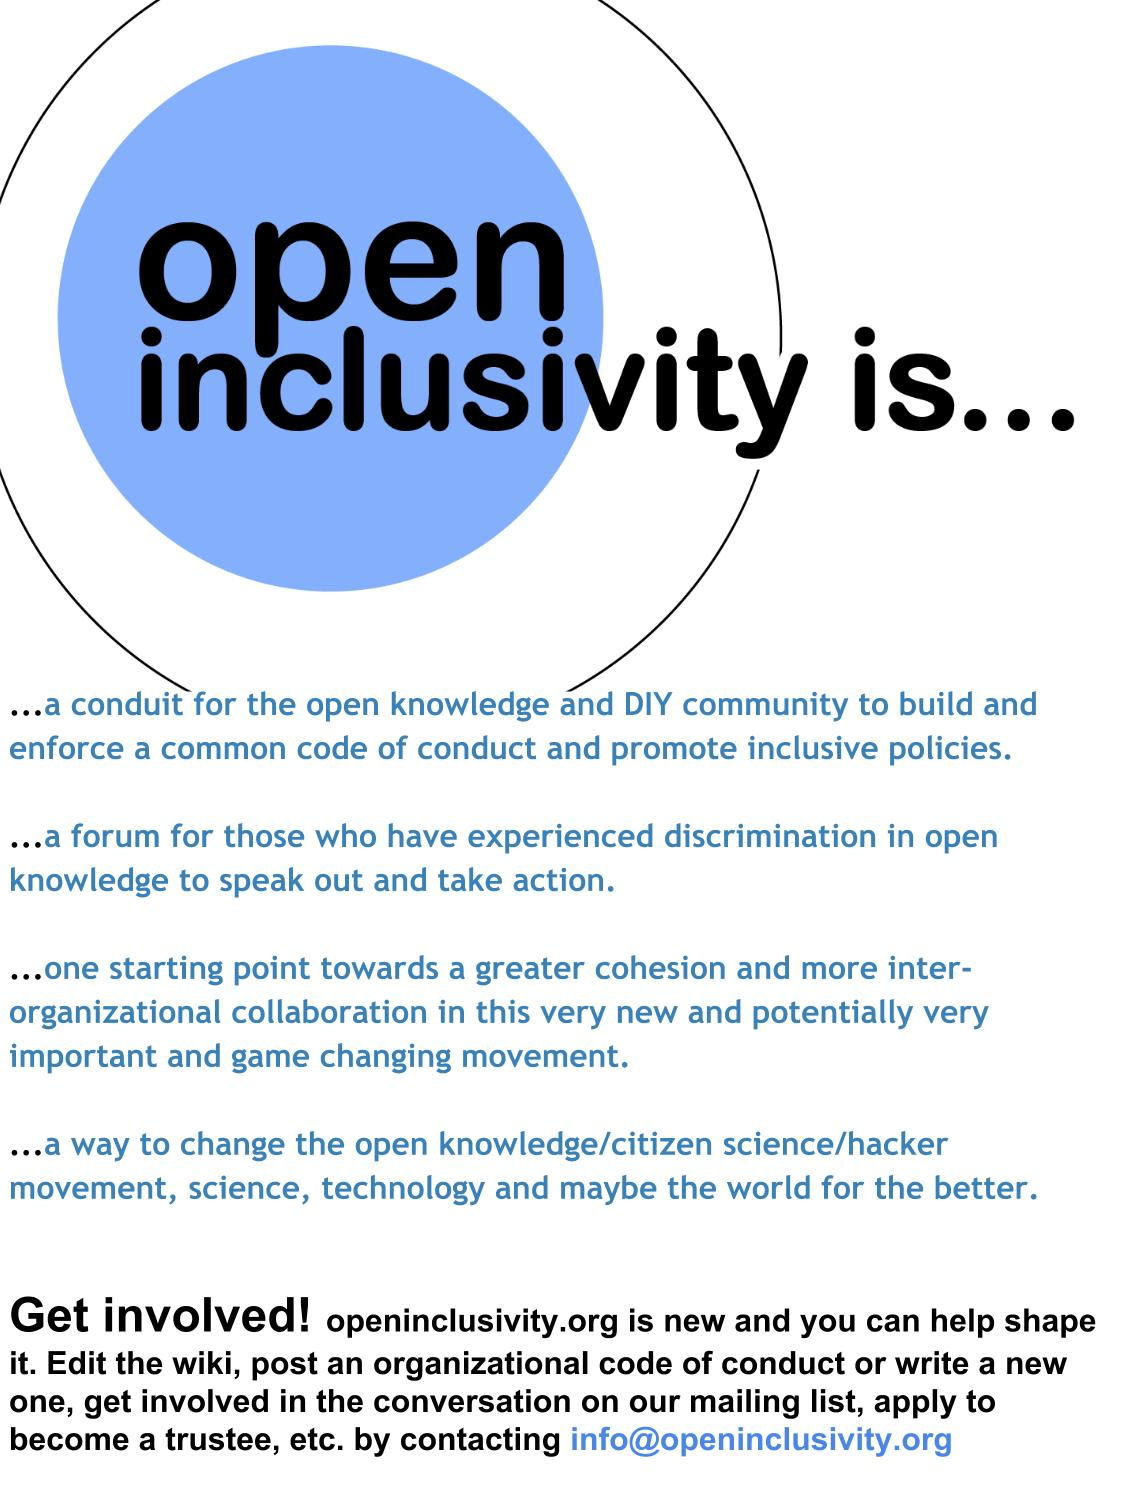 openinclusivity flyer with logo 2